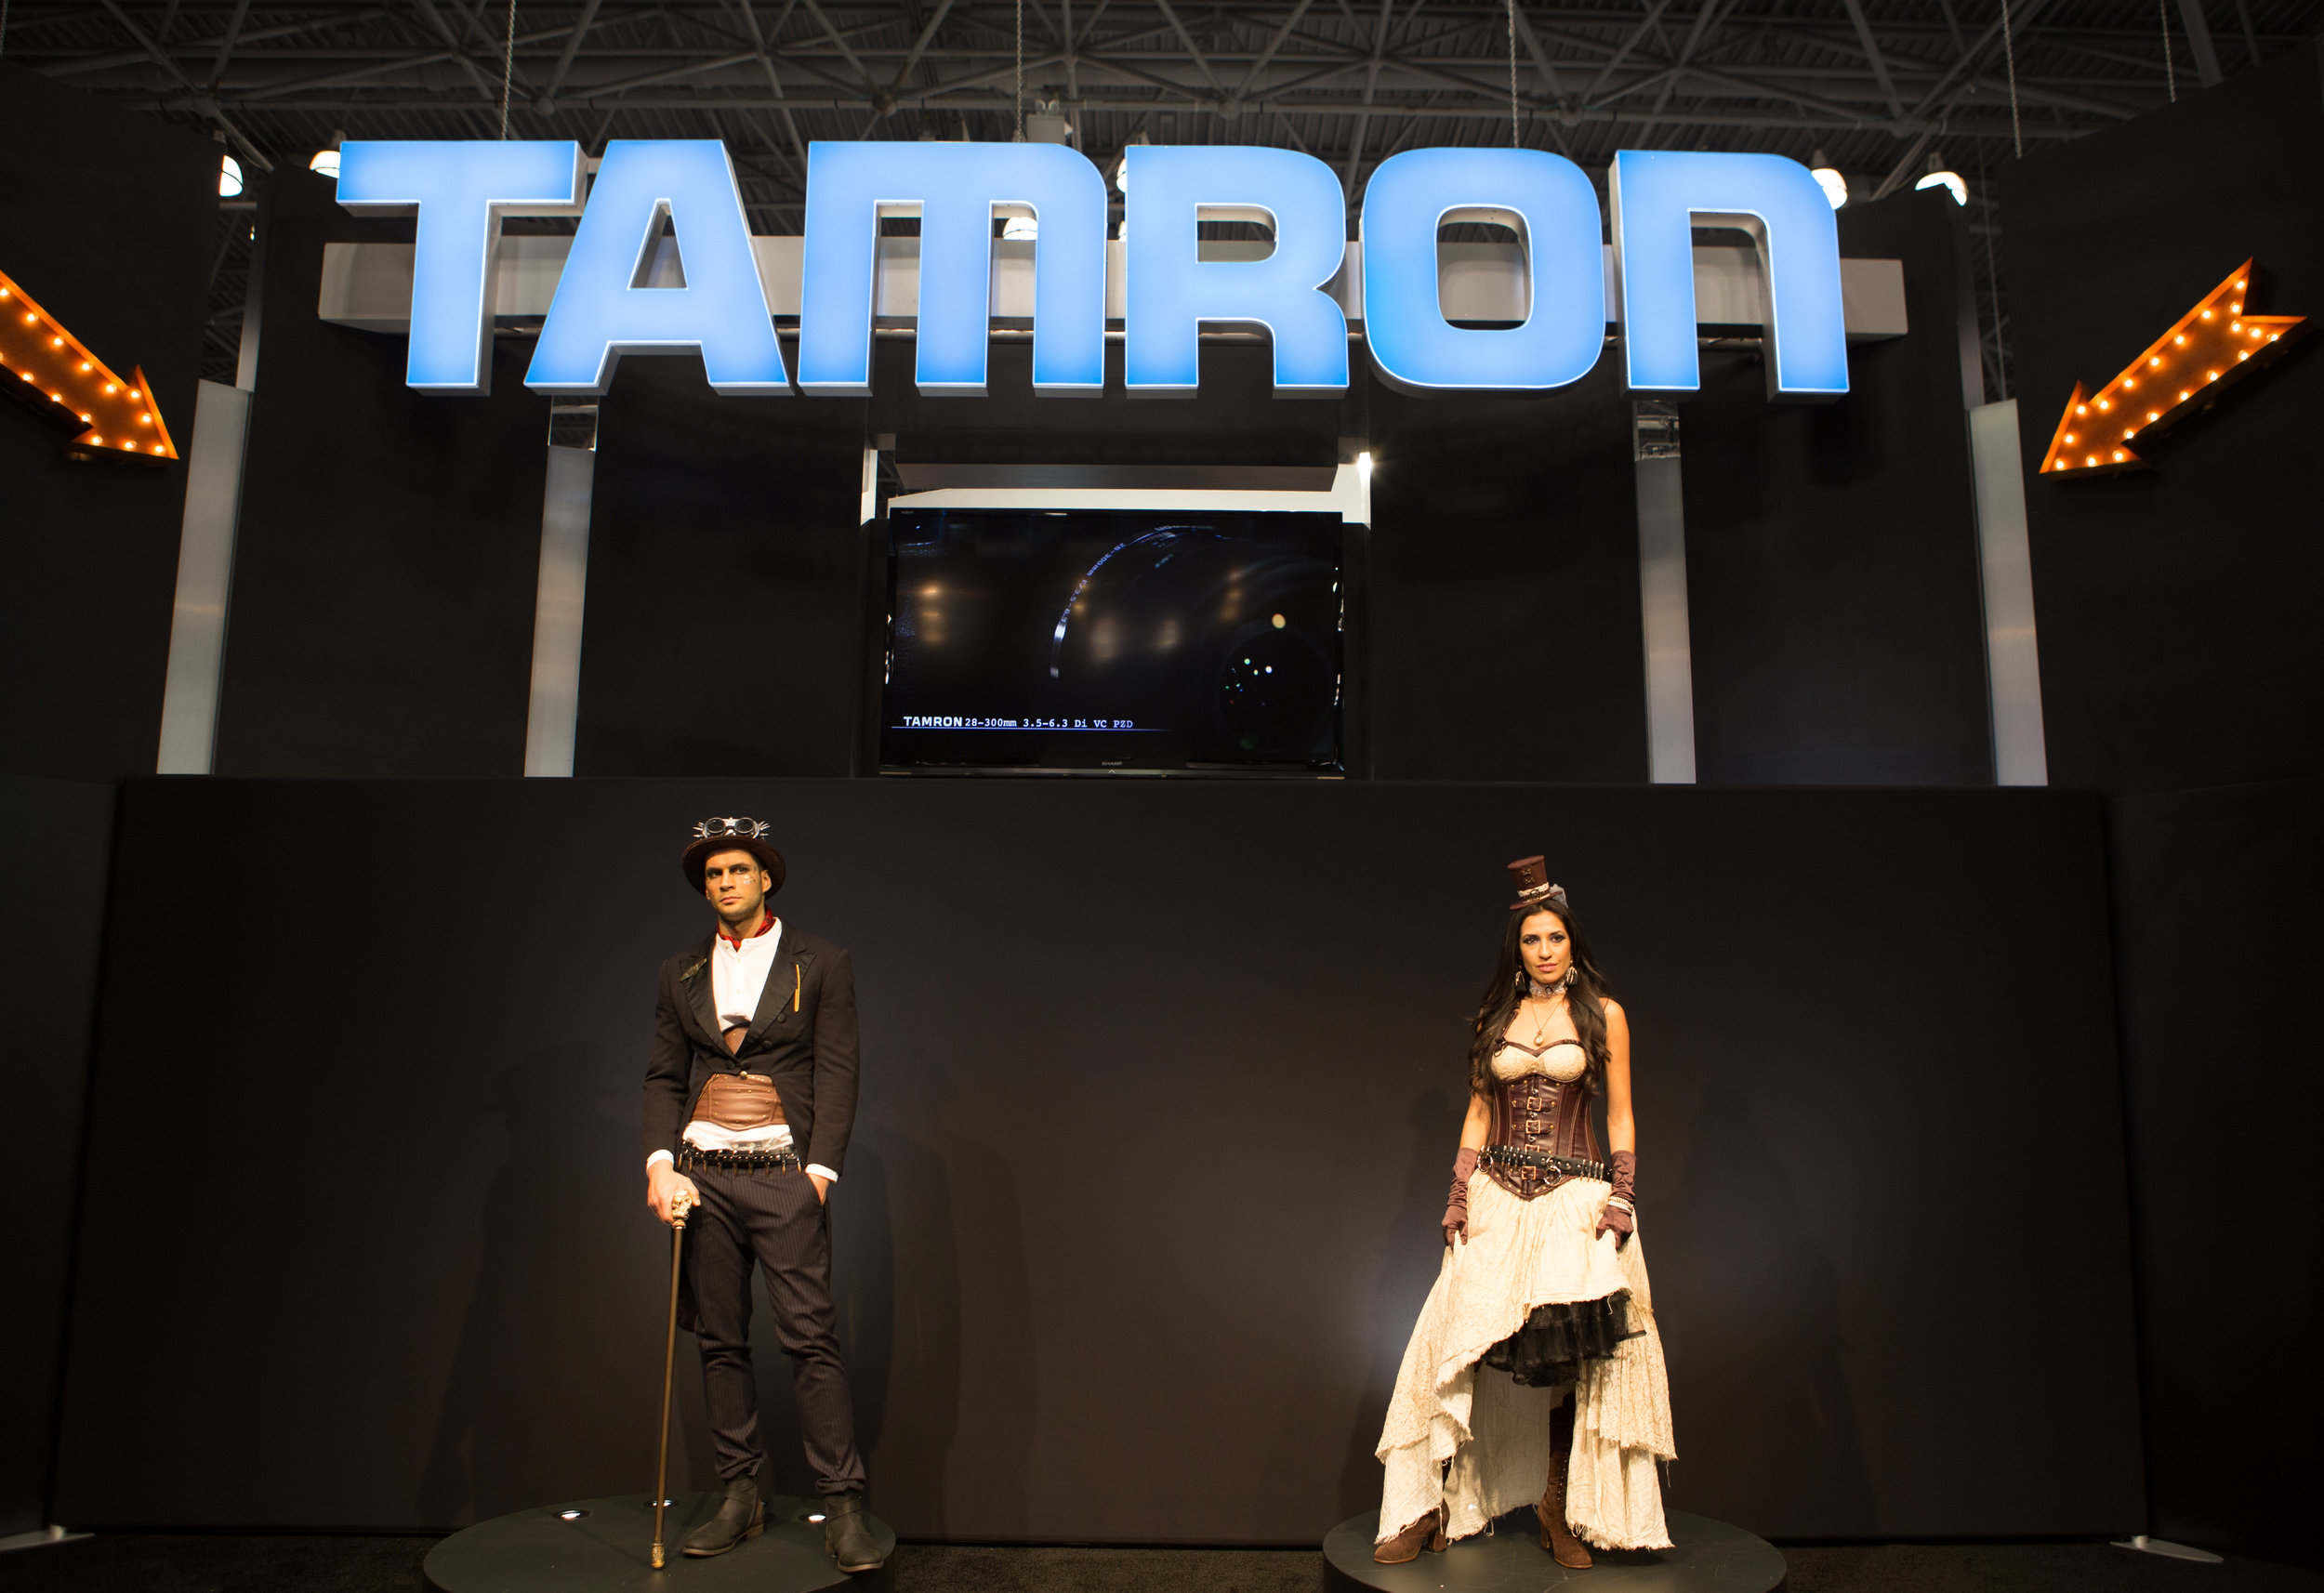 Tamron station on expo floor